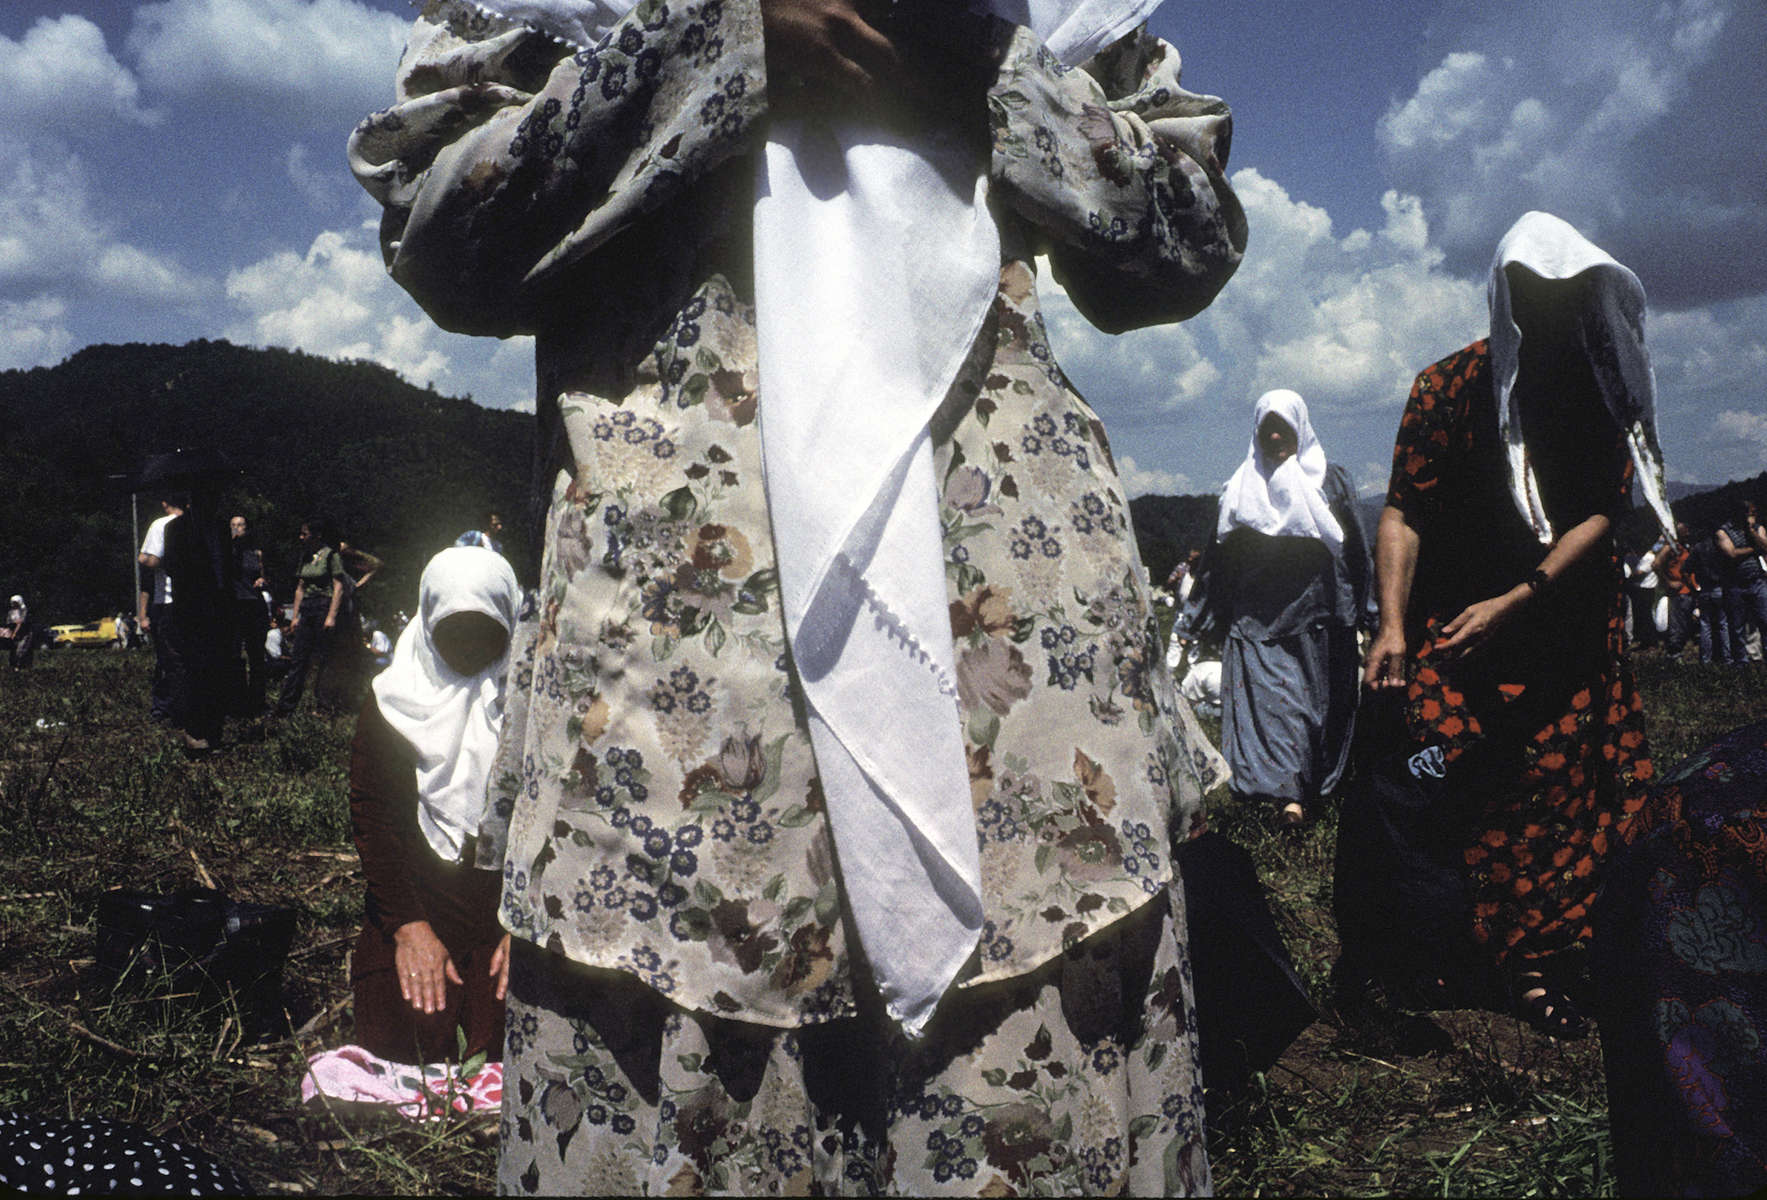 Muslim widows in prayer during dedication ceremonies for a planned memorial (which was completed in 2003) to the 7,000 to 8,000 Muslim men and boys who were killed by Serb forces in July 1995. The site is across the road from a now-abandoned factory where many of the victims were killed in the village of Potocari, just a few kilometers down the road from Srebrenica.